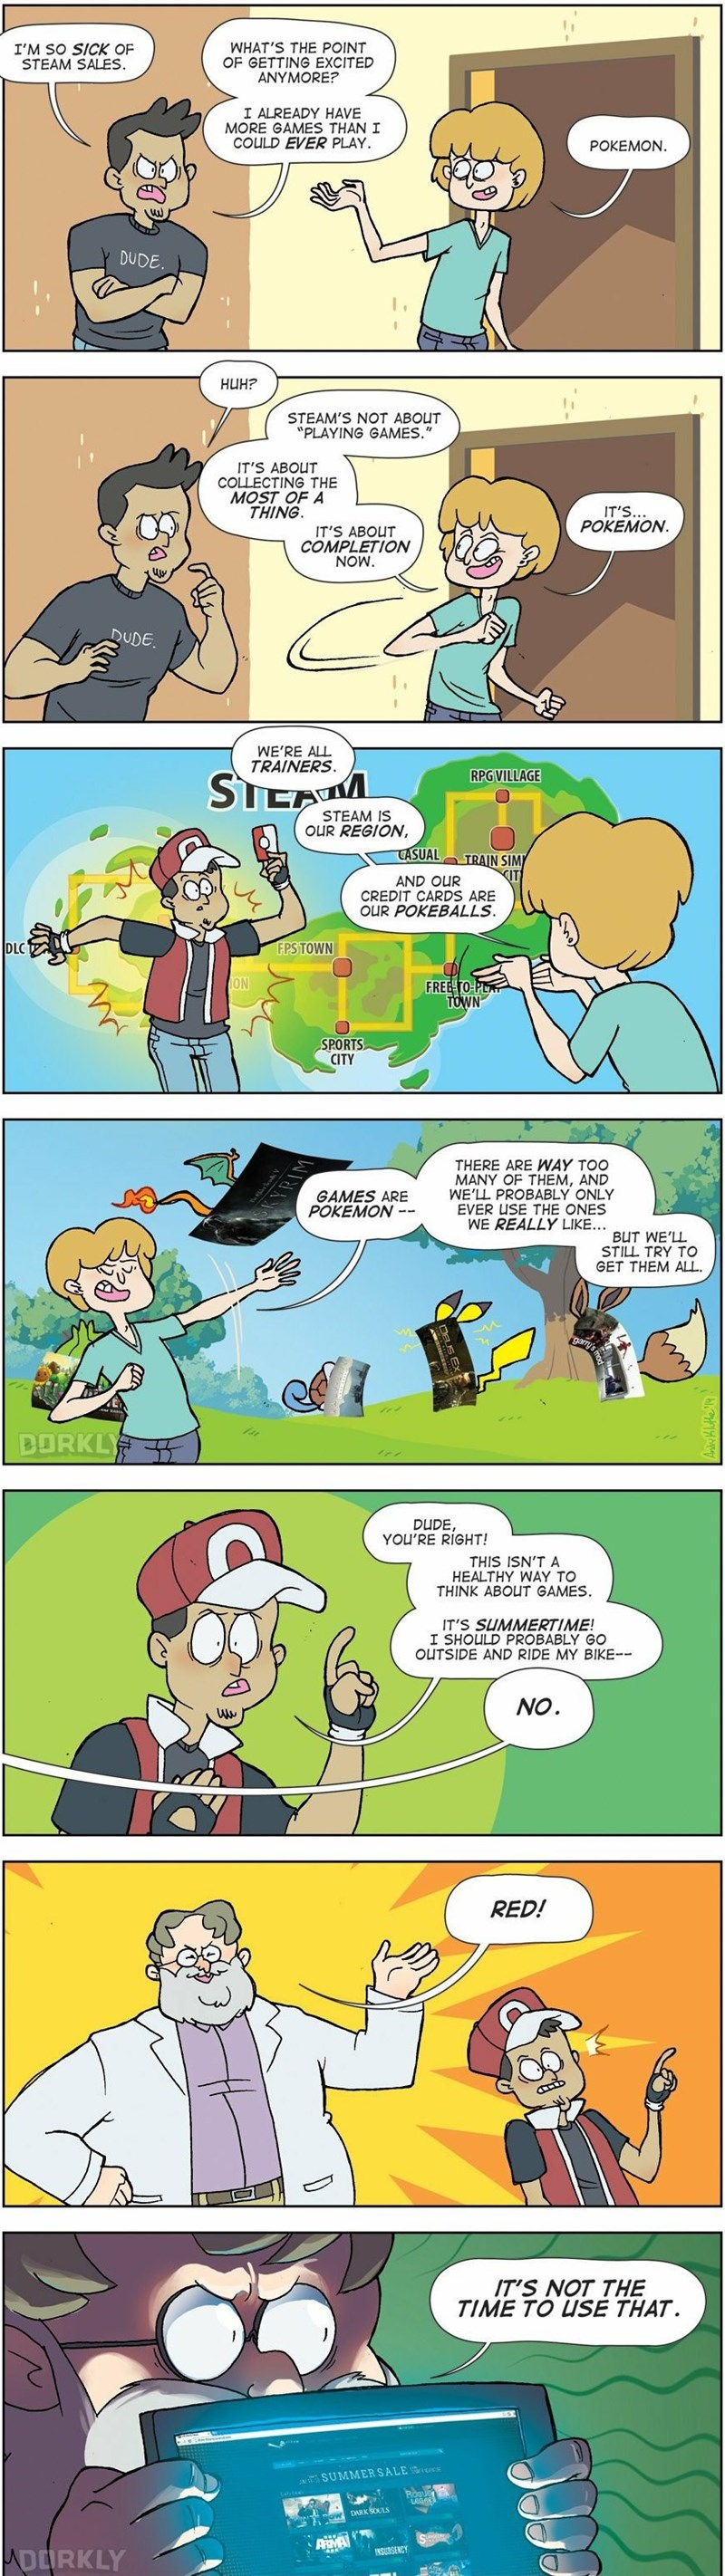 steam,Pokémon,web comics,theory